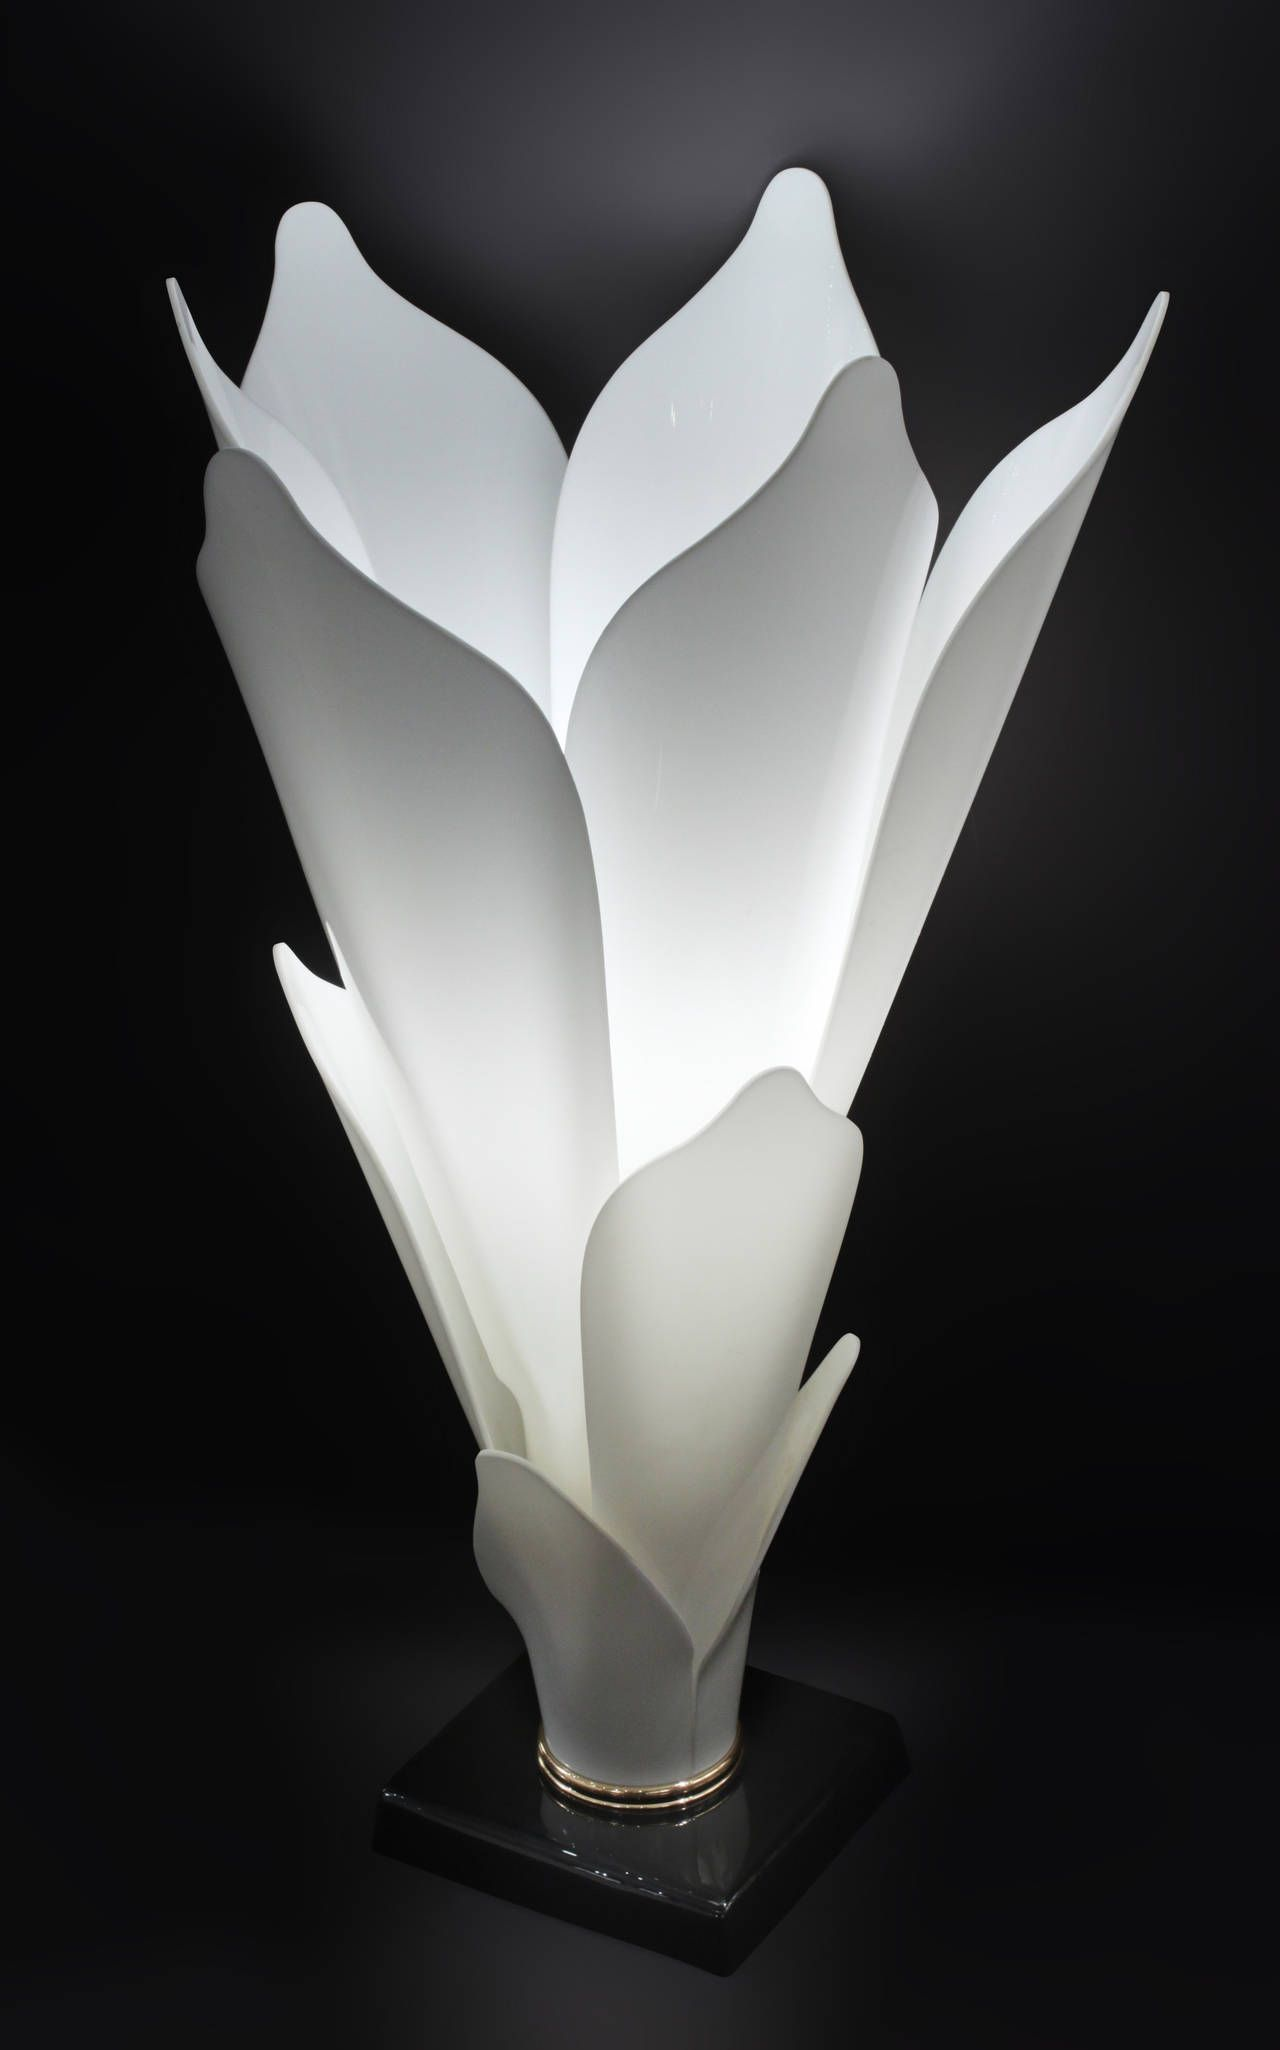 Flower Table Lamp With Molded White Lucite Petals By Rougier Lamp